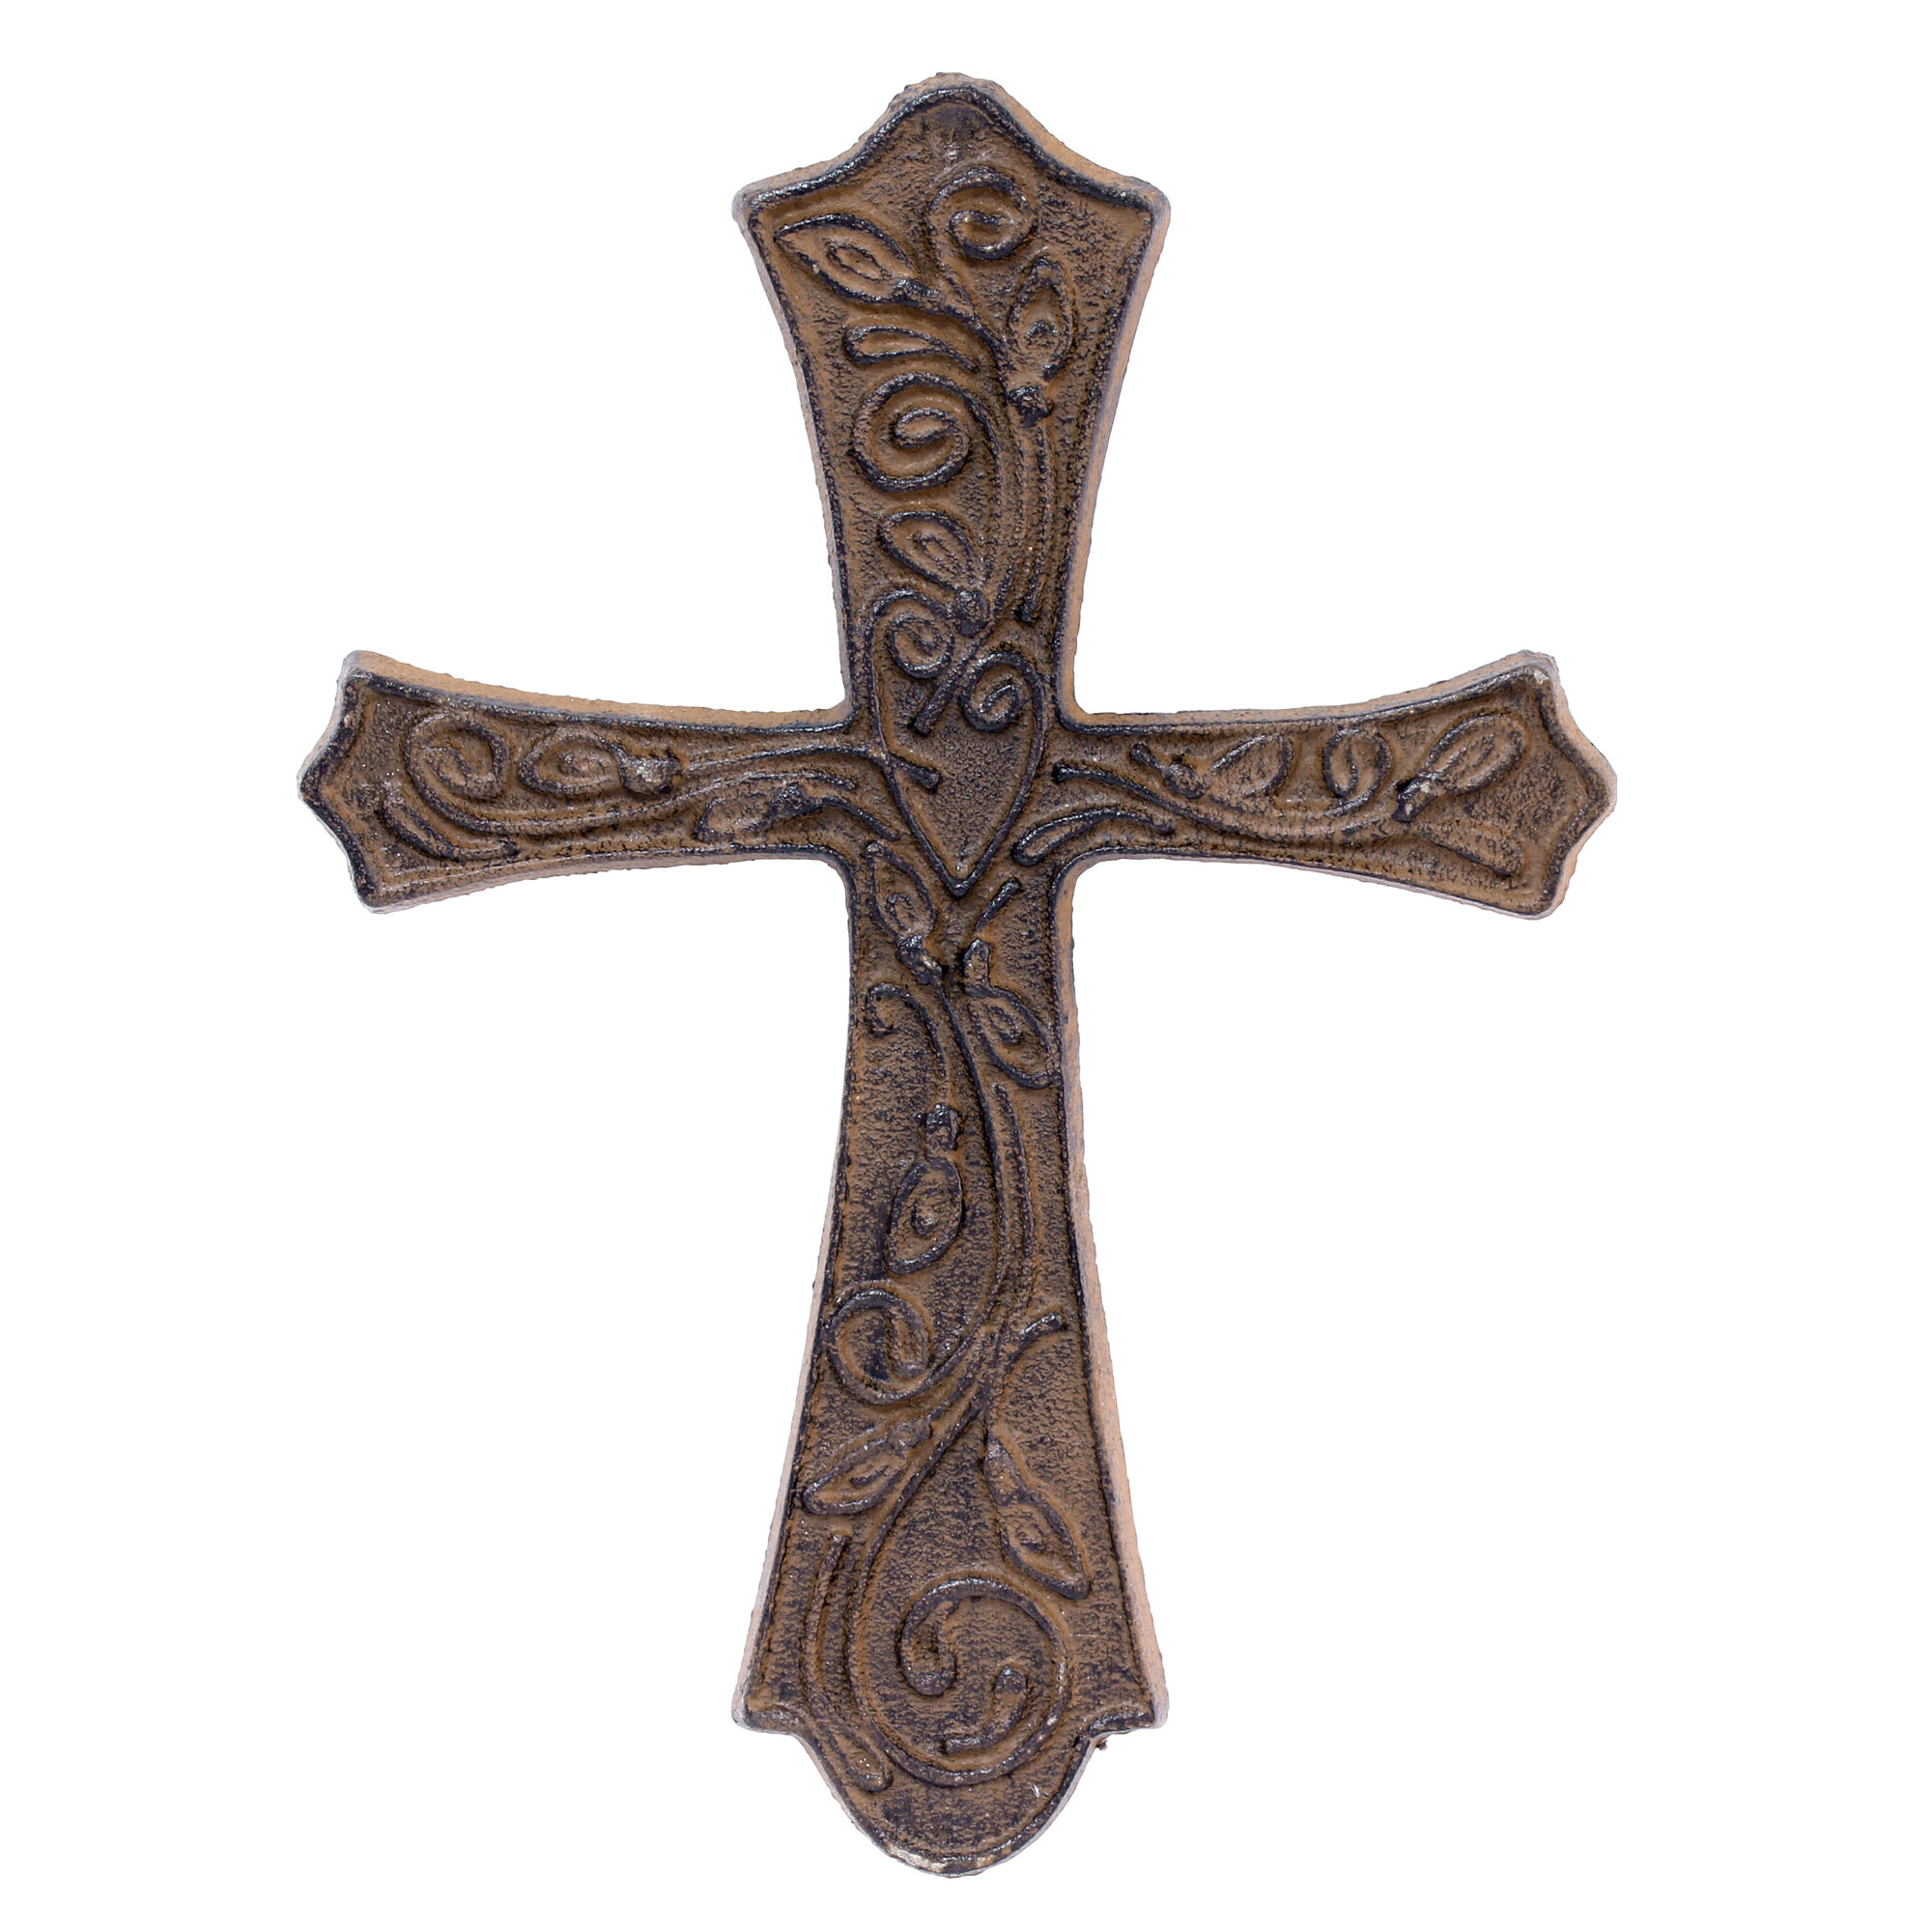 Details About Ophelia Co Large Rustic Flared Cast Metal Cross Wall Decor